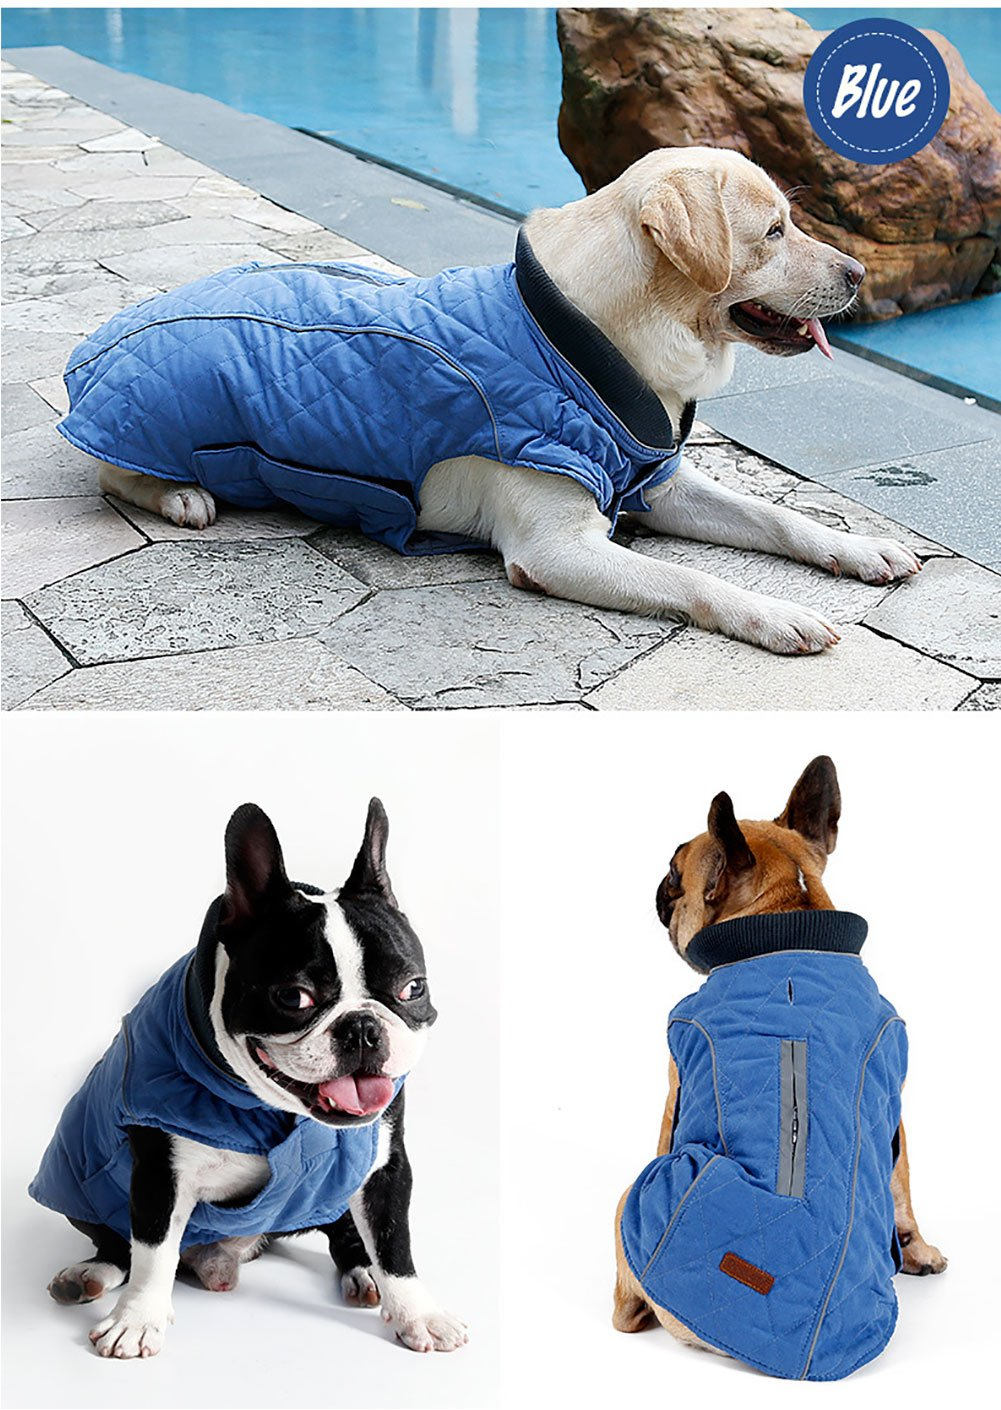 Cold Winter Dog Pet Coat Jacket Vest Warm Outfit Clothes for Small Medium Large Dogs 3